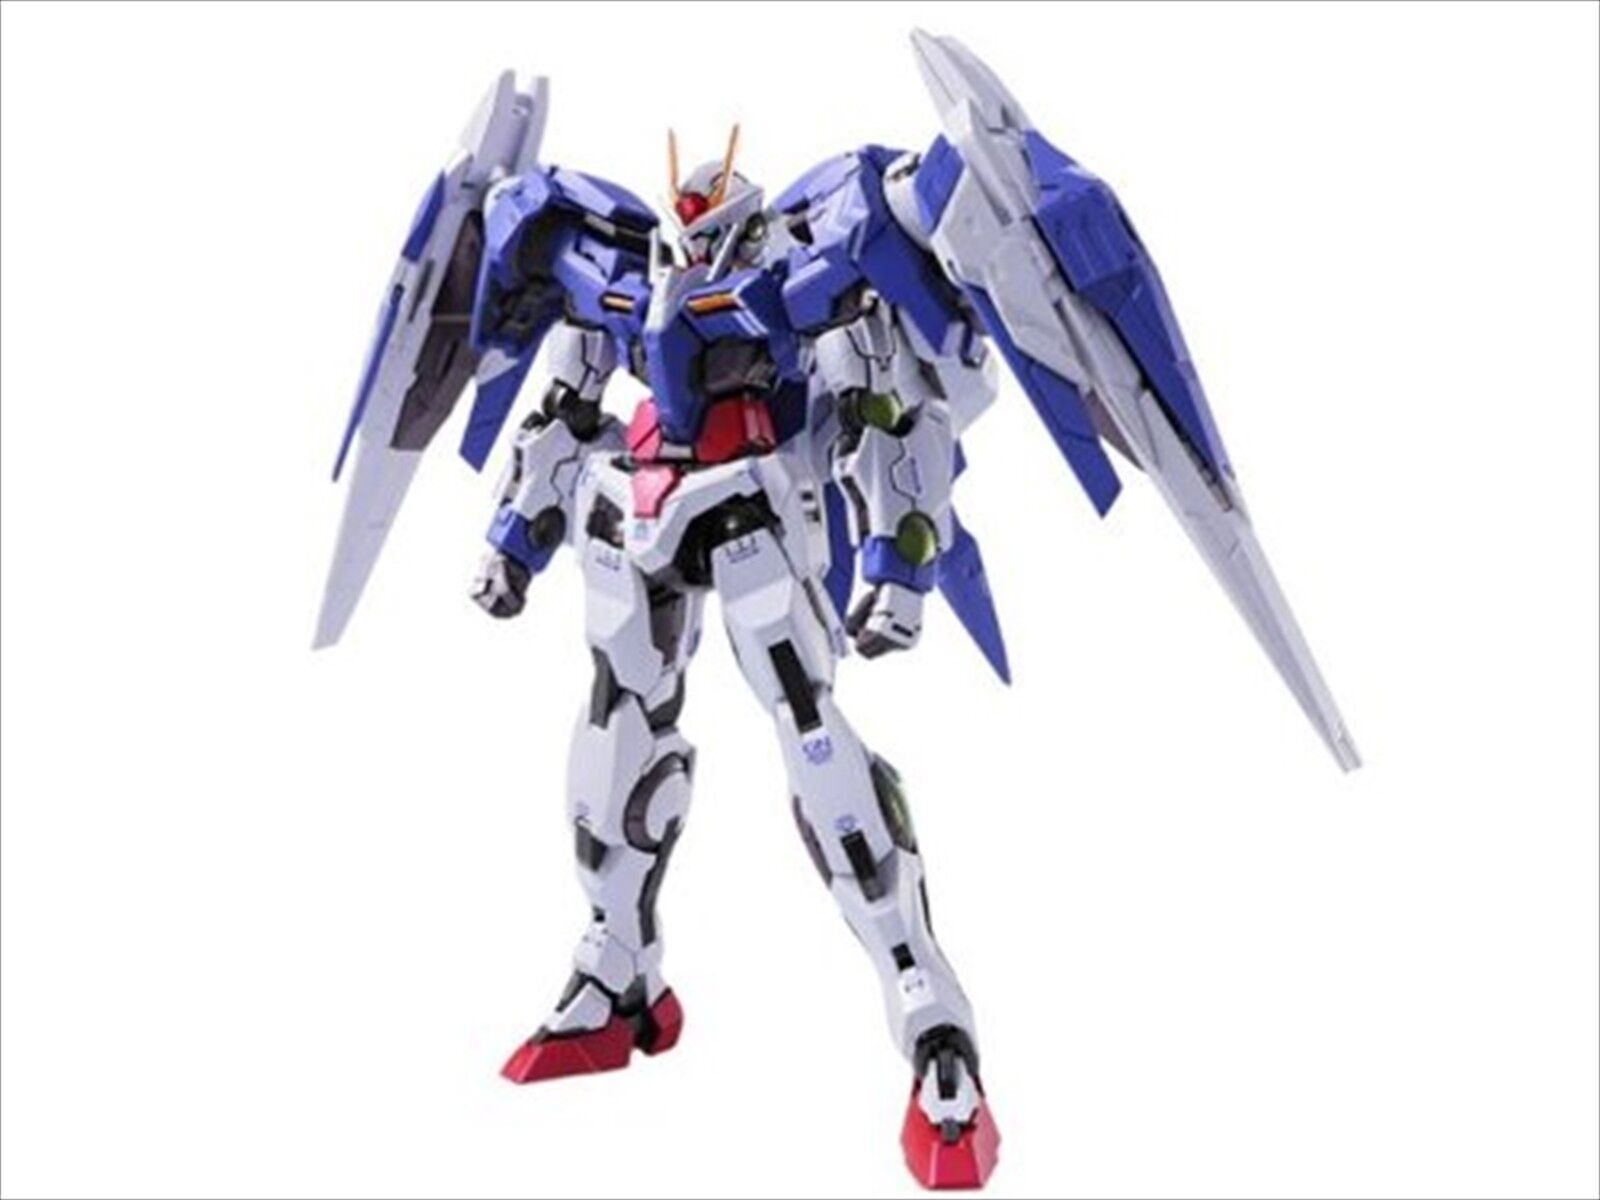 METAL BUILD Gundam 00 GN-0000 + GNR-010 00 RAISER Action Figure BANDAI F/S EMS